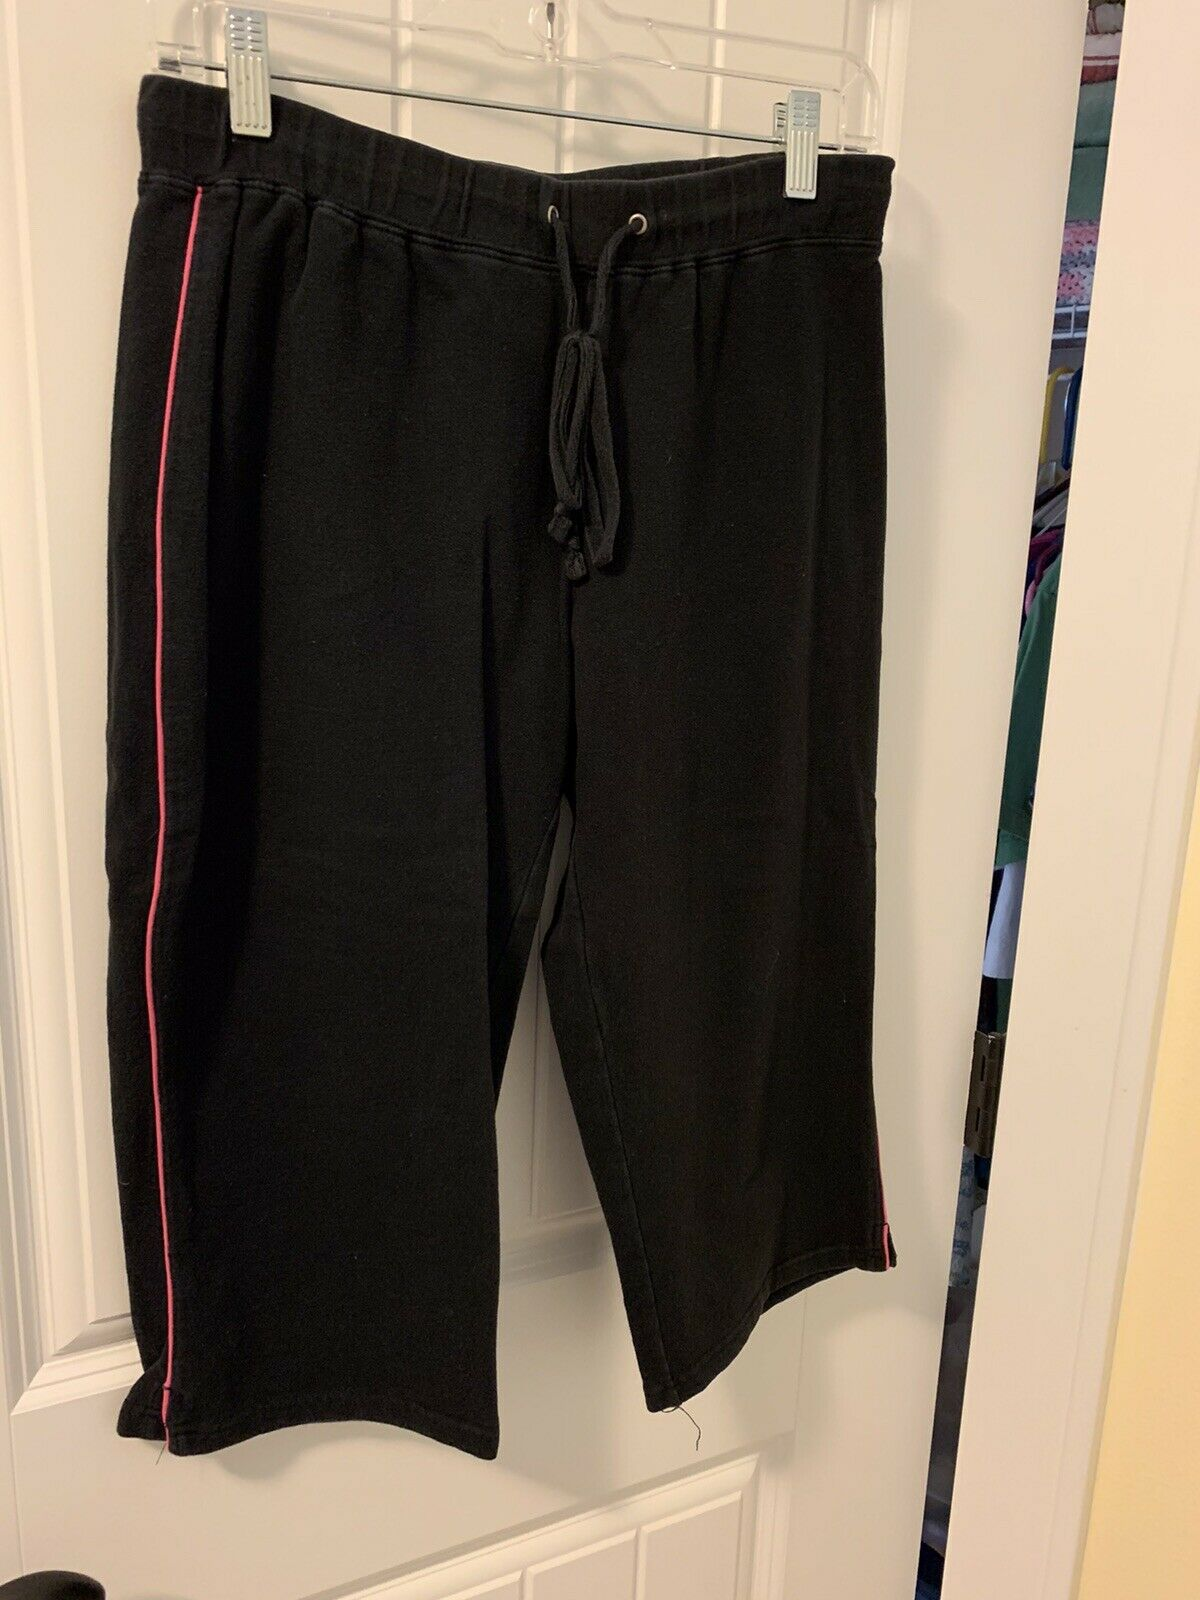 Style&Co Sport Black Cotton Spandex Capris Beachcombers Small S Pink Soft